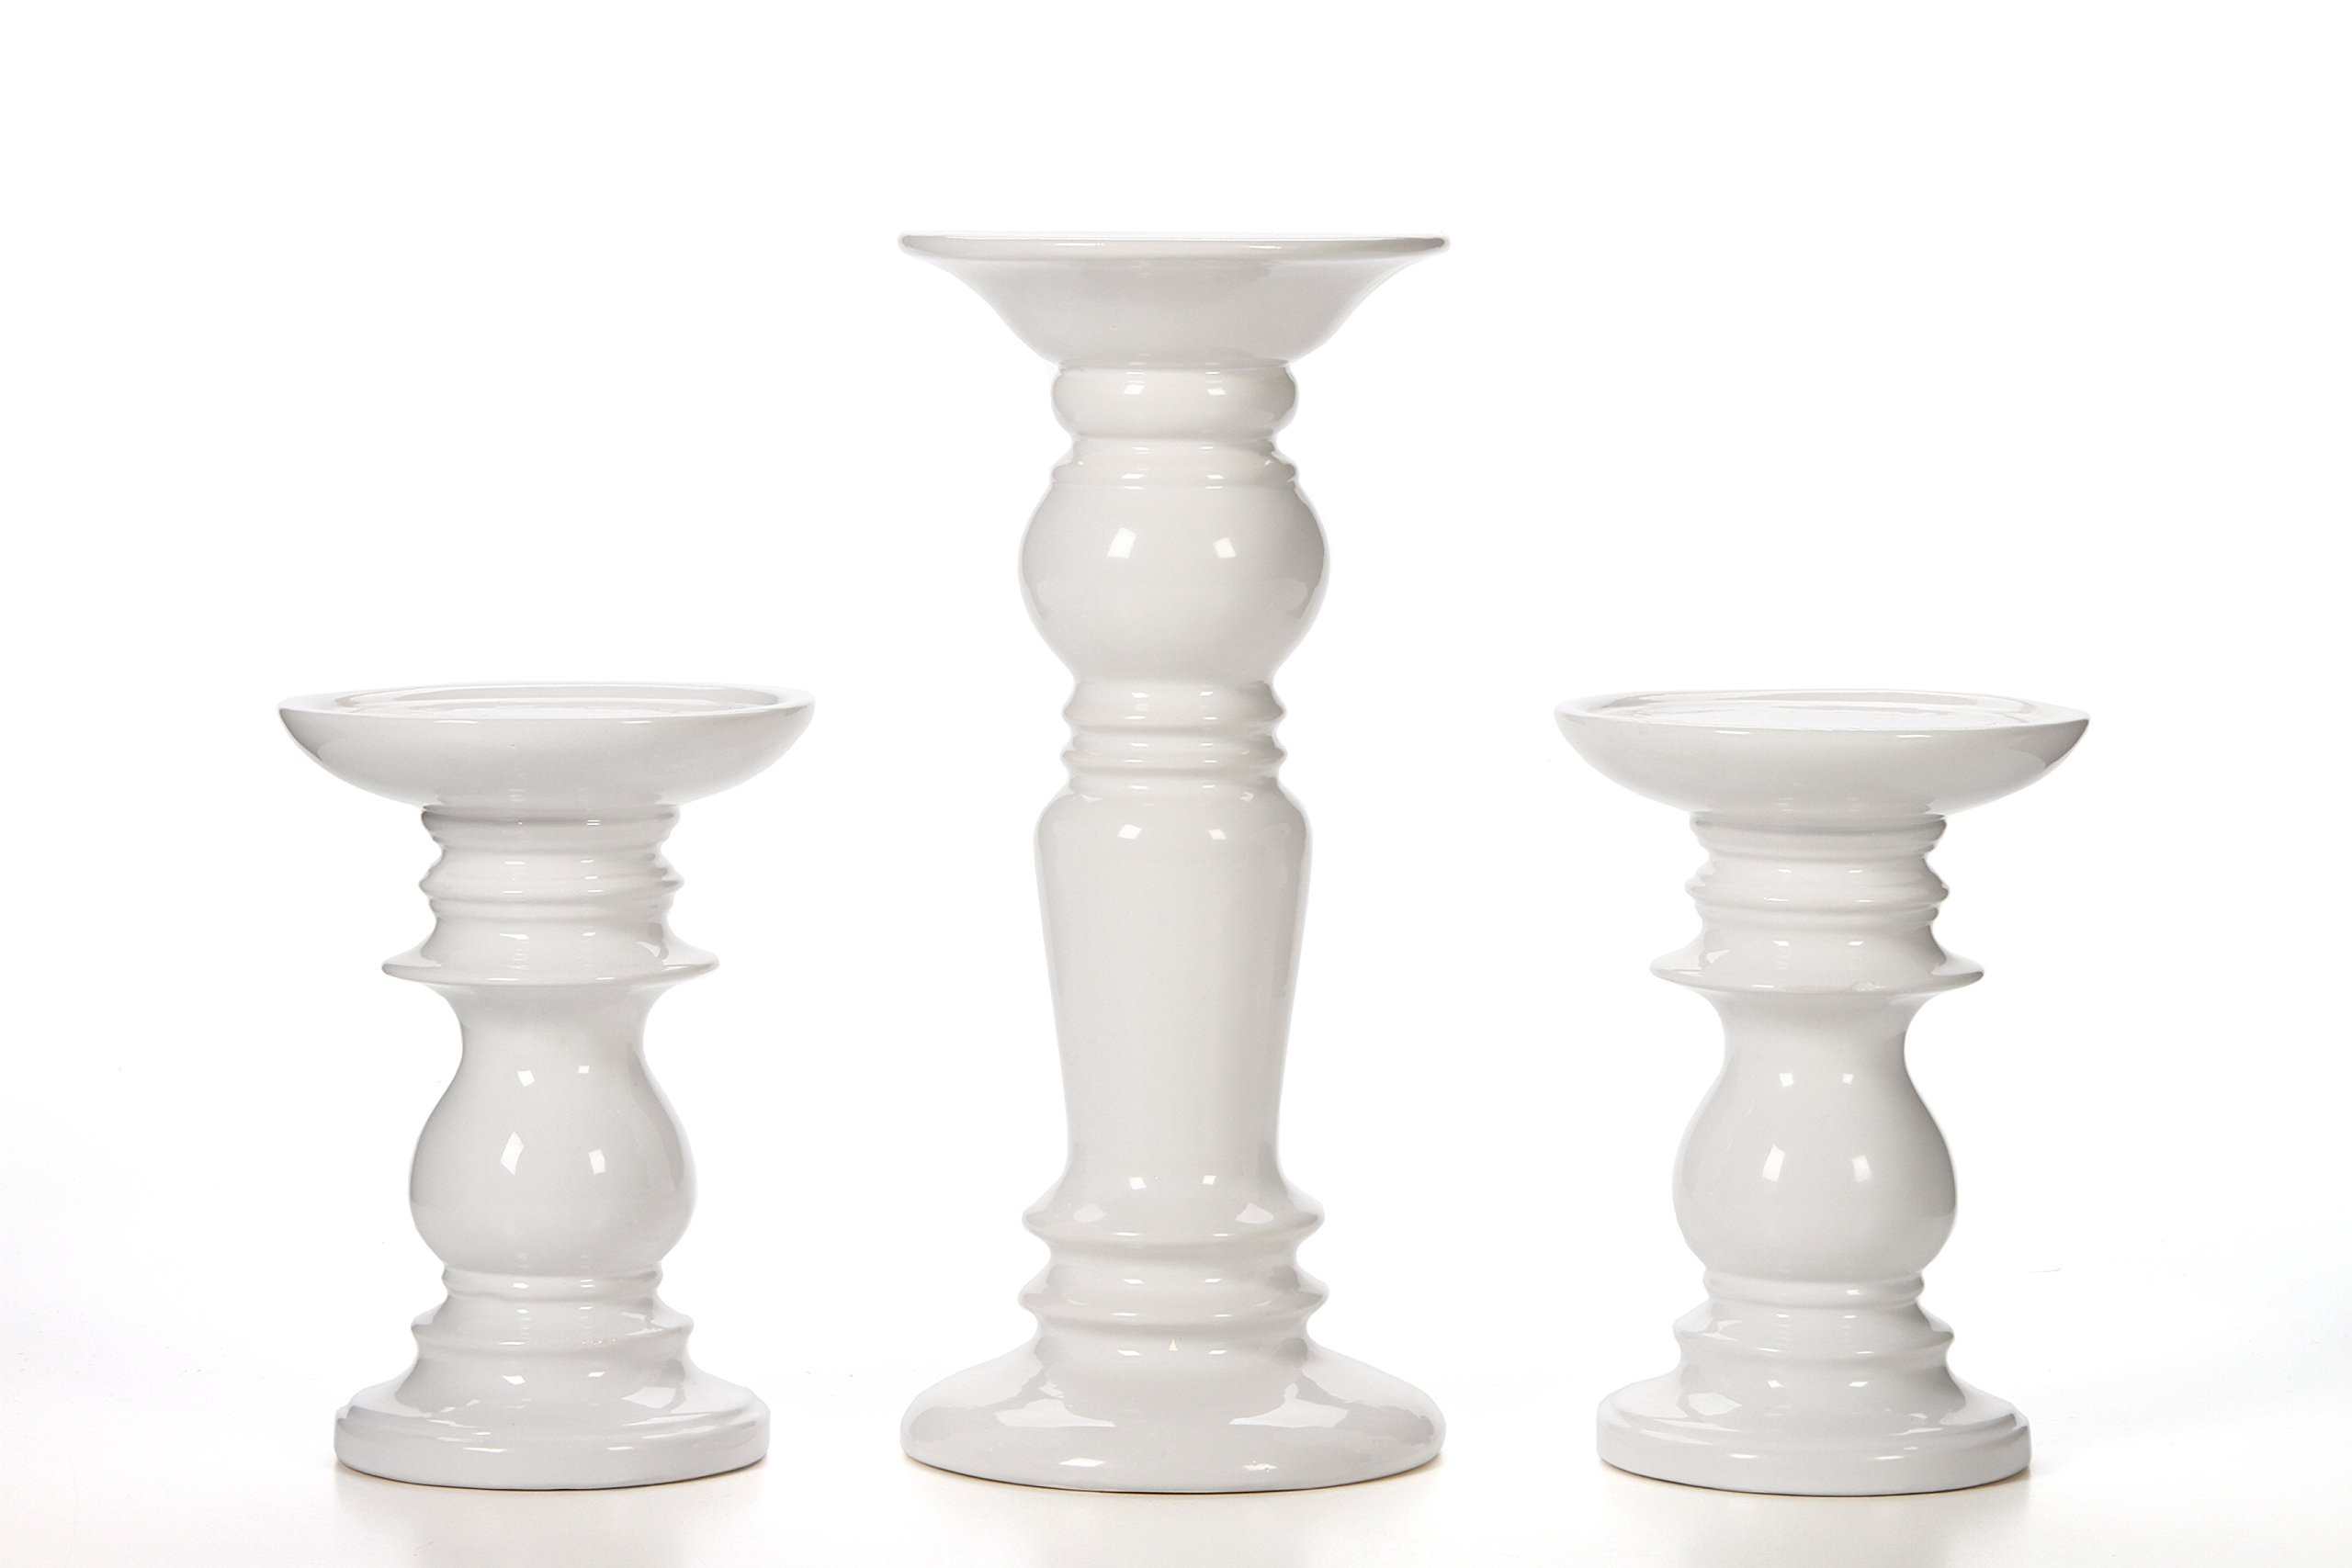 Hosley Set of 3 Ceramic White Pillar Candle Holders - Two 6'' and One 9.5'' High. Ideal for LED and Pillar Candles, Gifts for Wedding, Party, Home, Spa, Reiki, Aromatherapy, Votive Candle Gardens P2